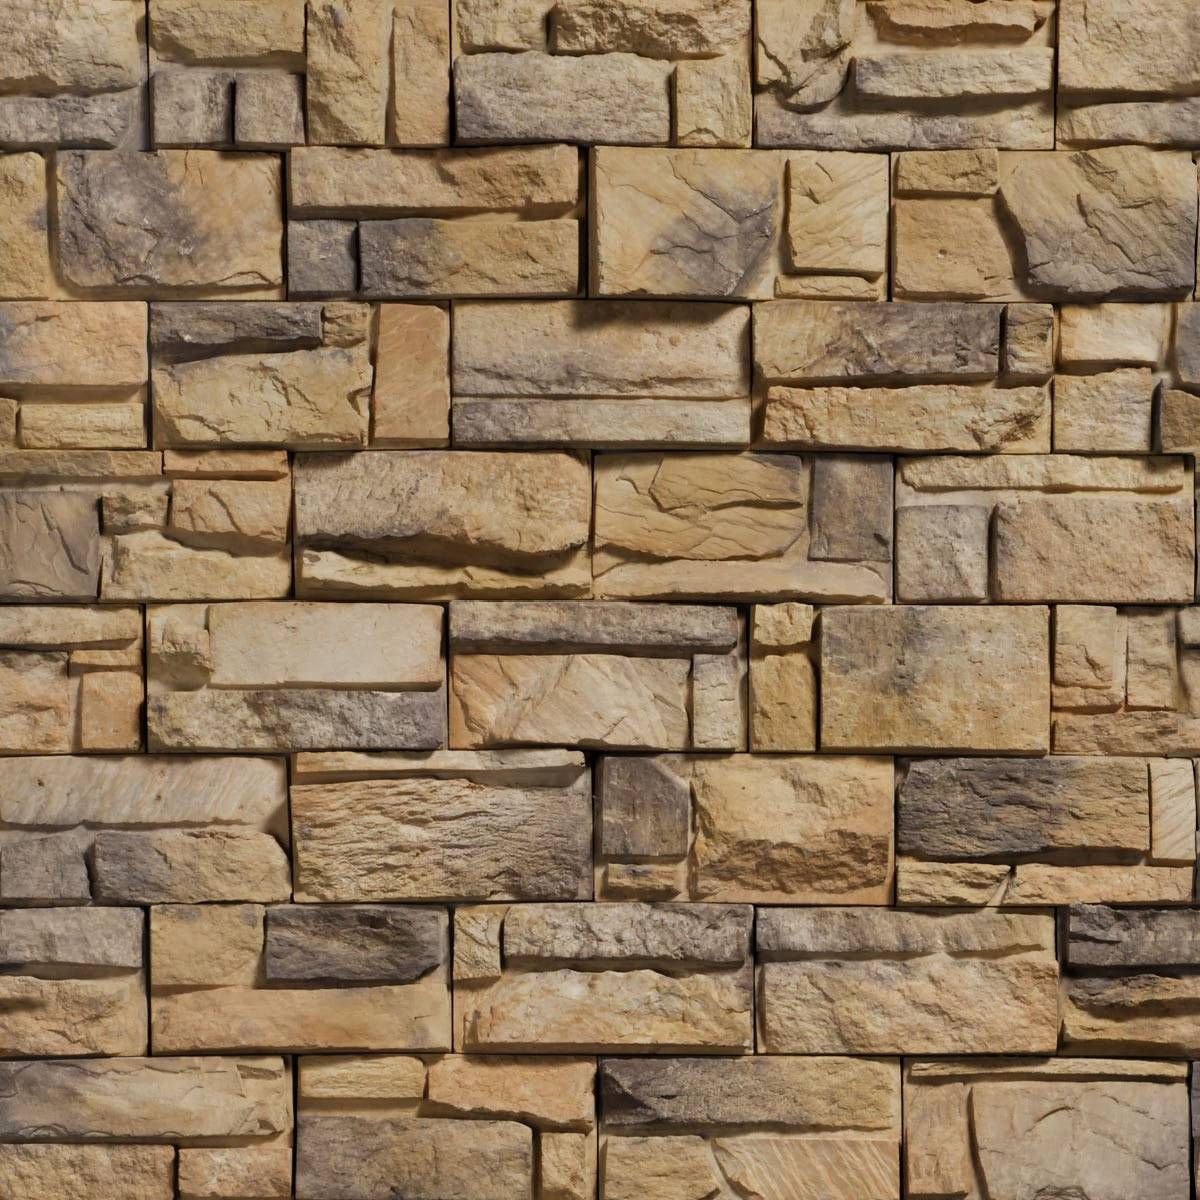 tan and grey stone in a brick wall pattern material